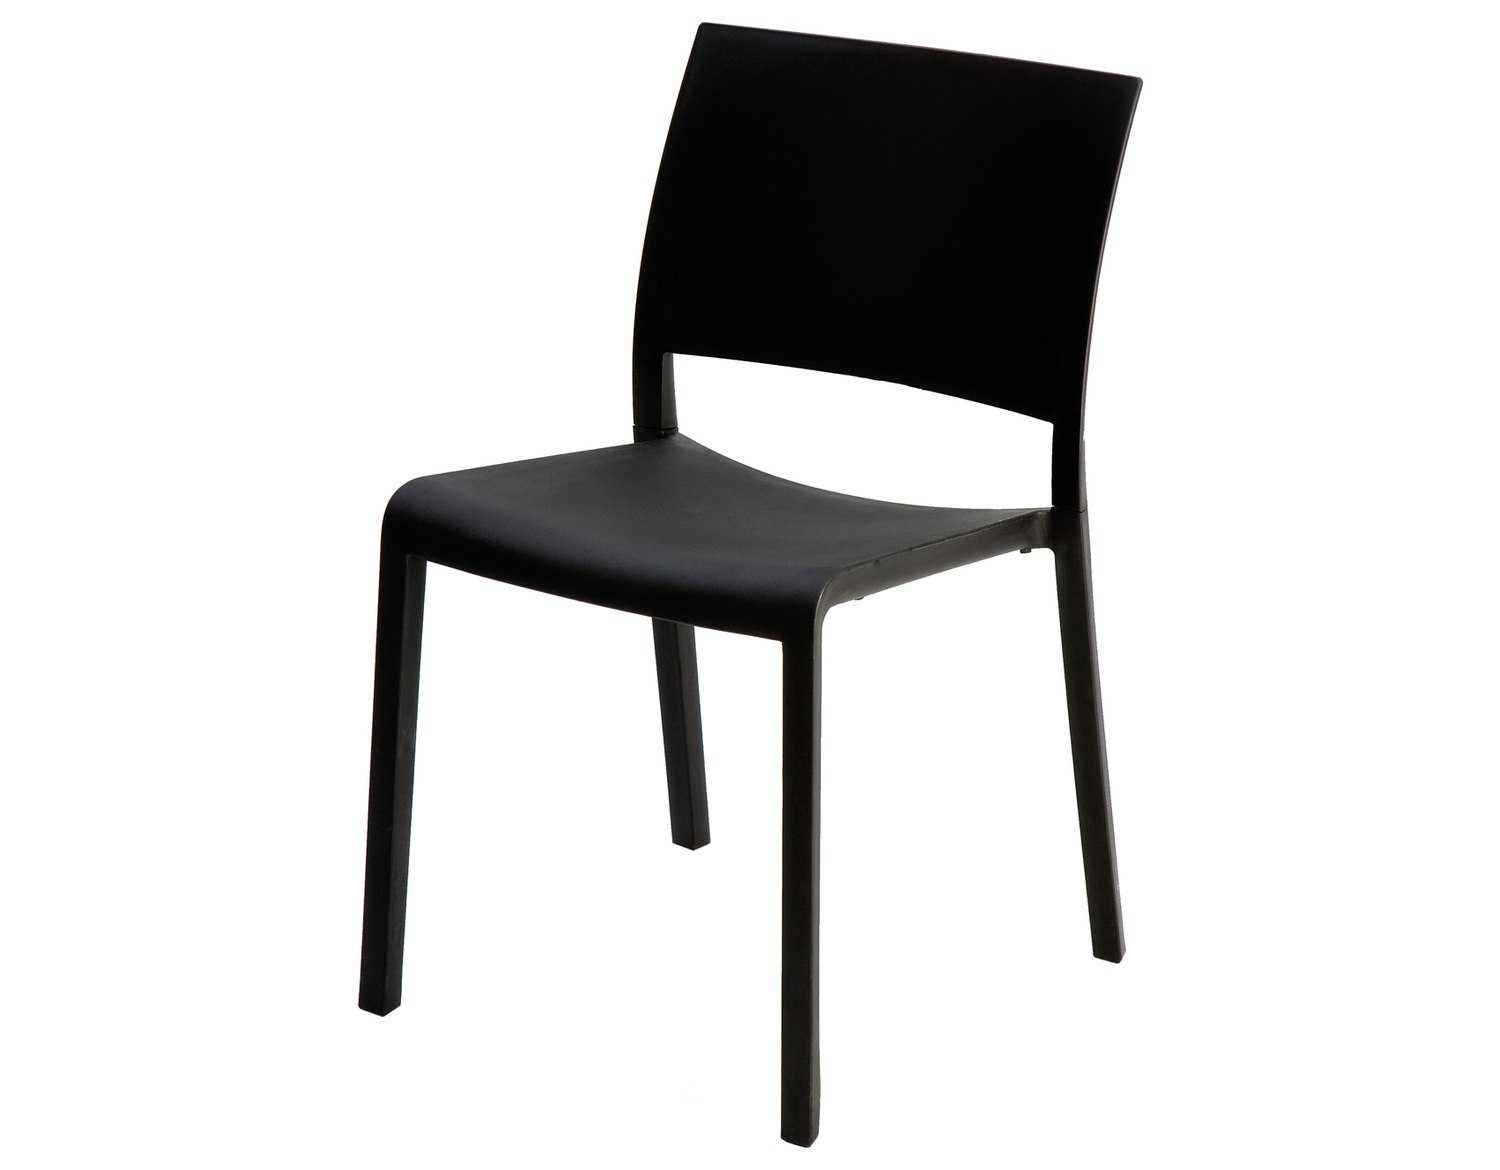 resols resol outdoor patio furniture at patioliving lama avion  resol outdoor patio furniture at patioliving resol fiona recycled plastic black side chair list price 157